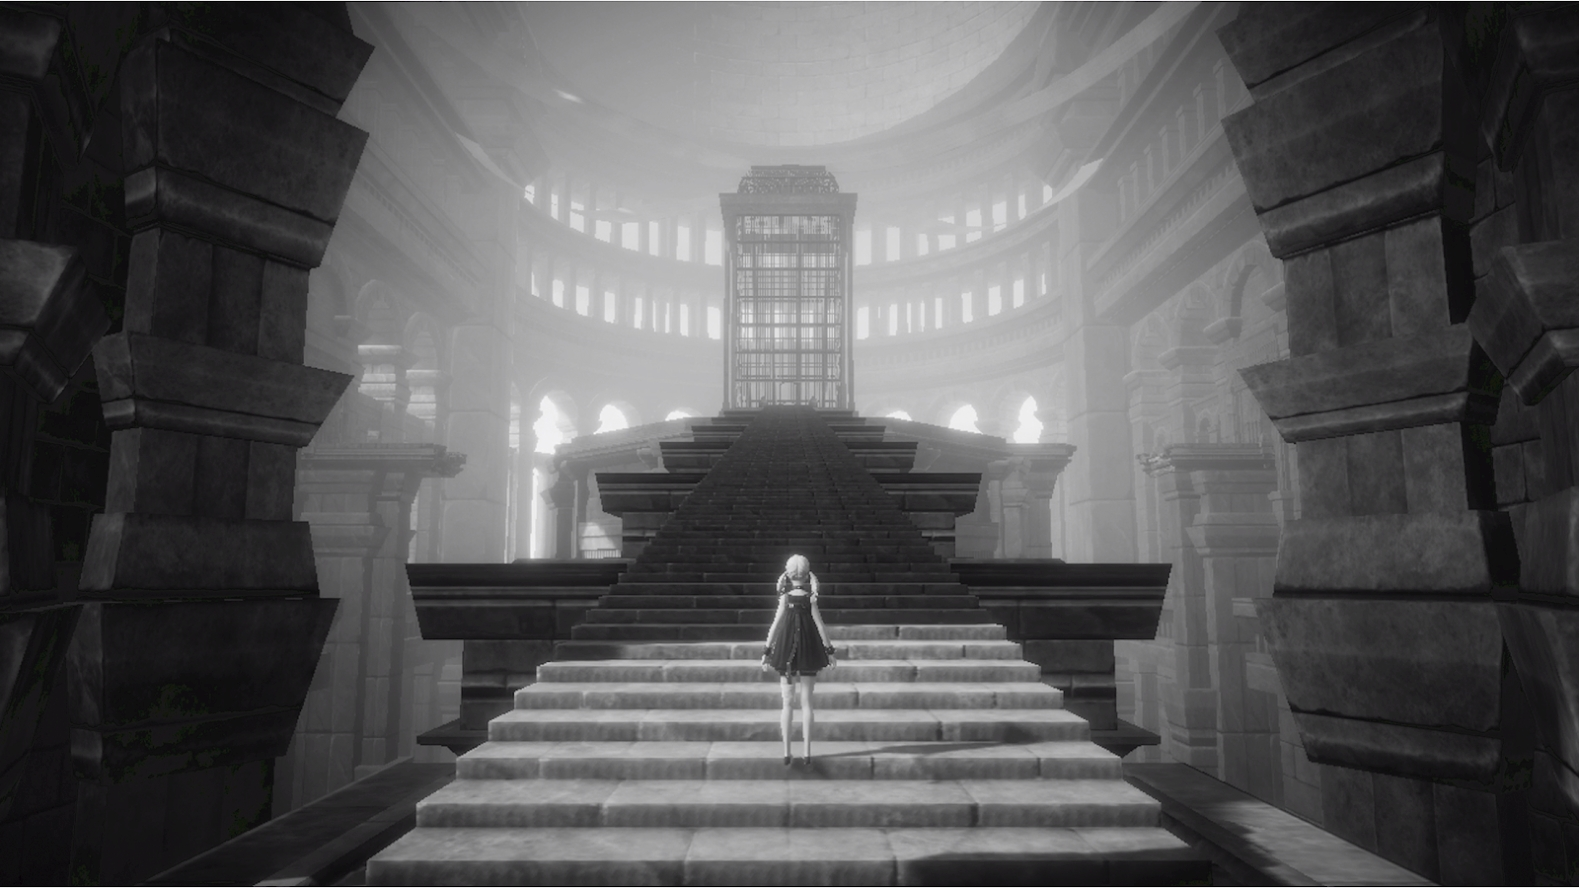 Square Enix's NieR Reincarnation Launches In Japan On February 18